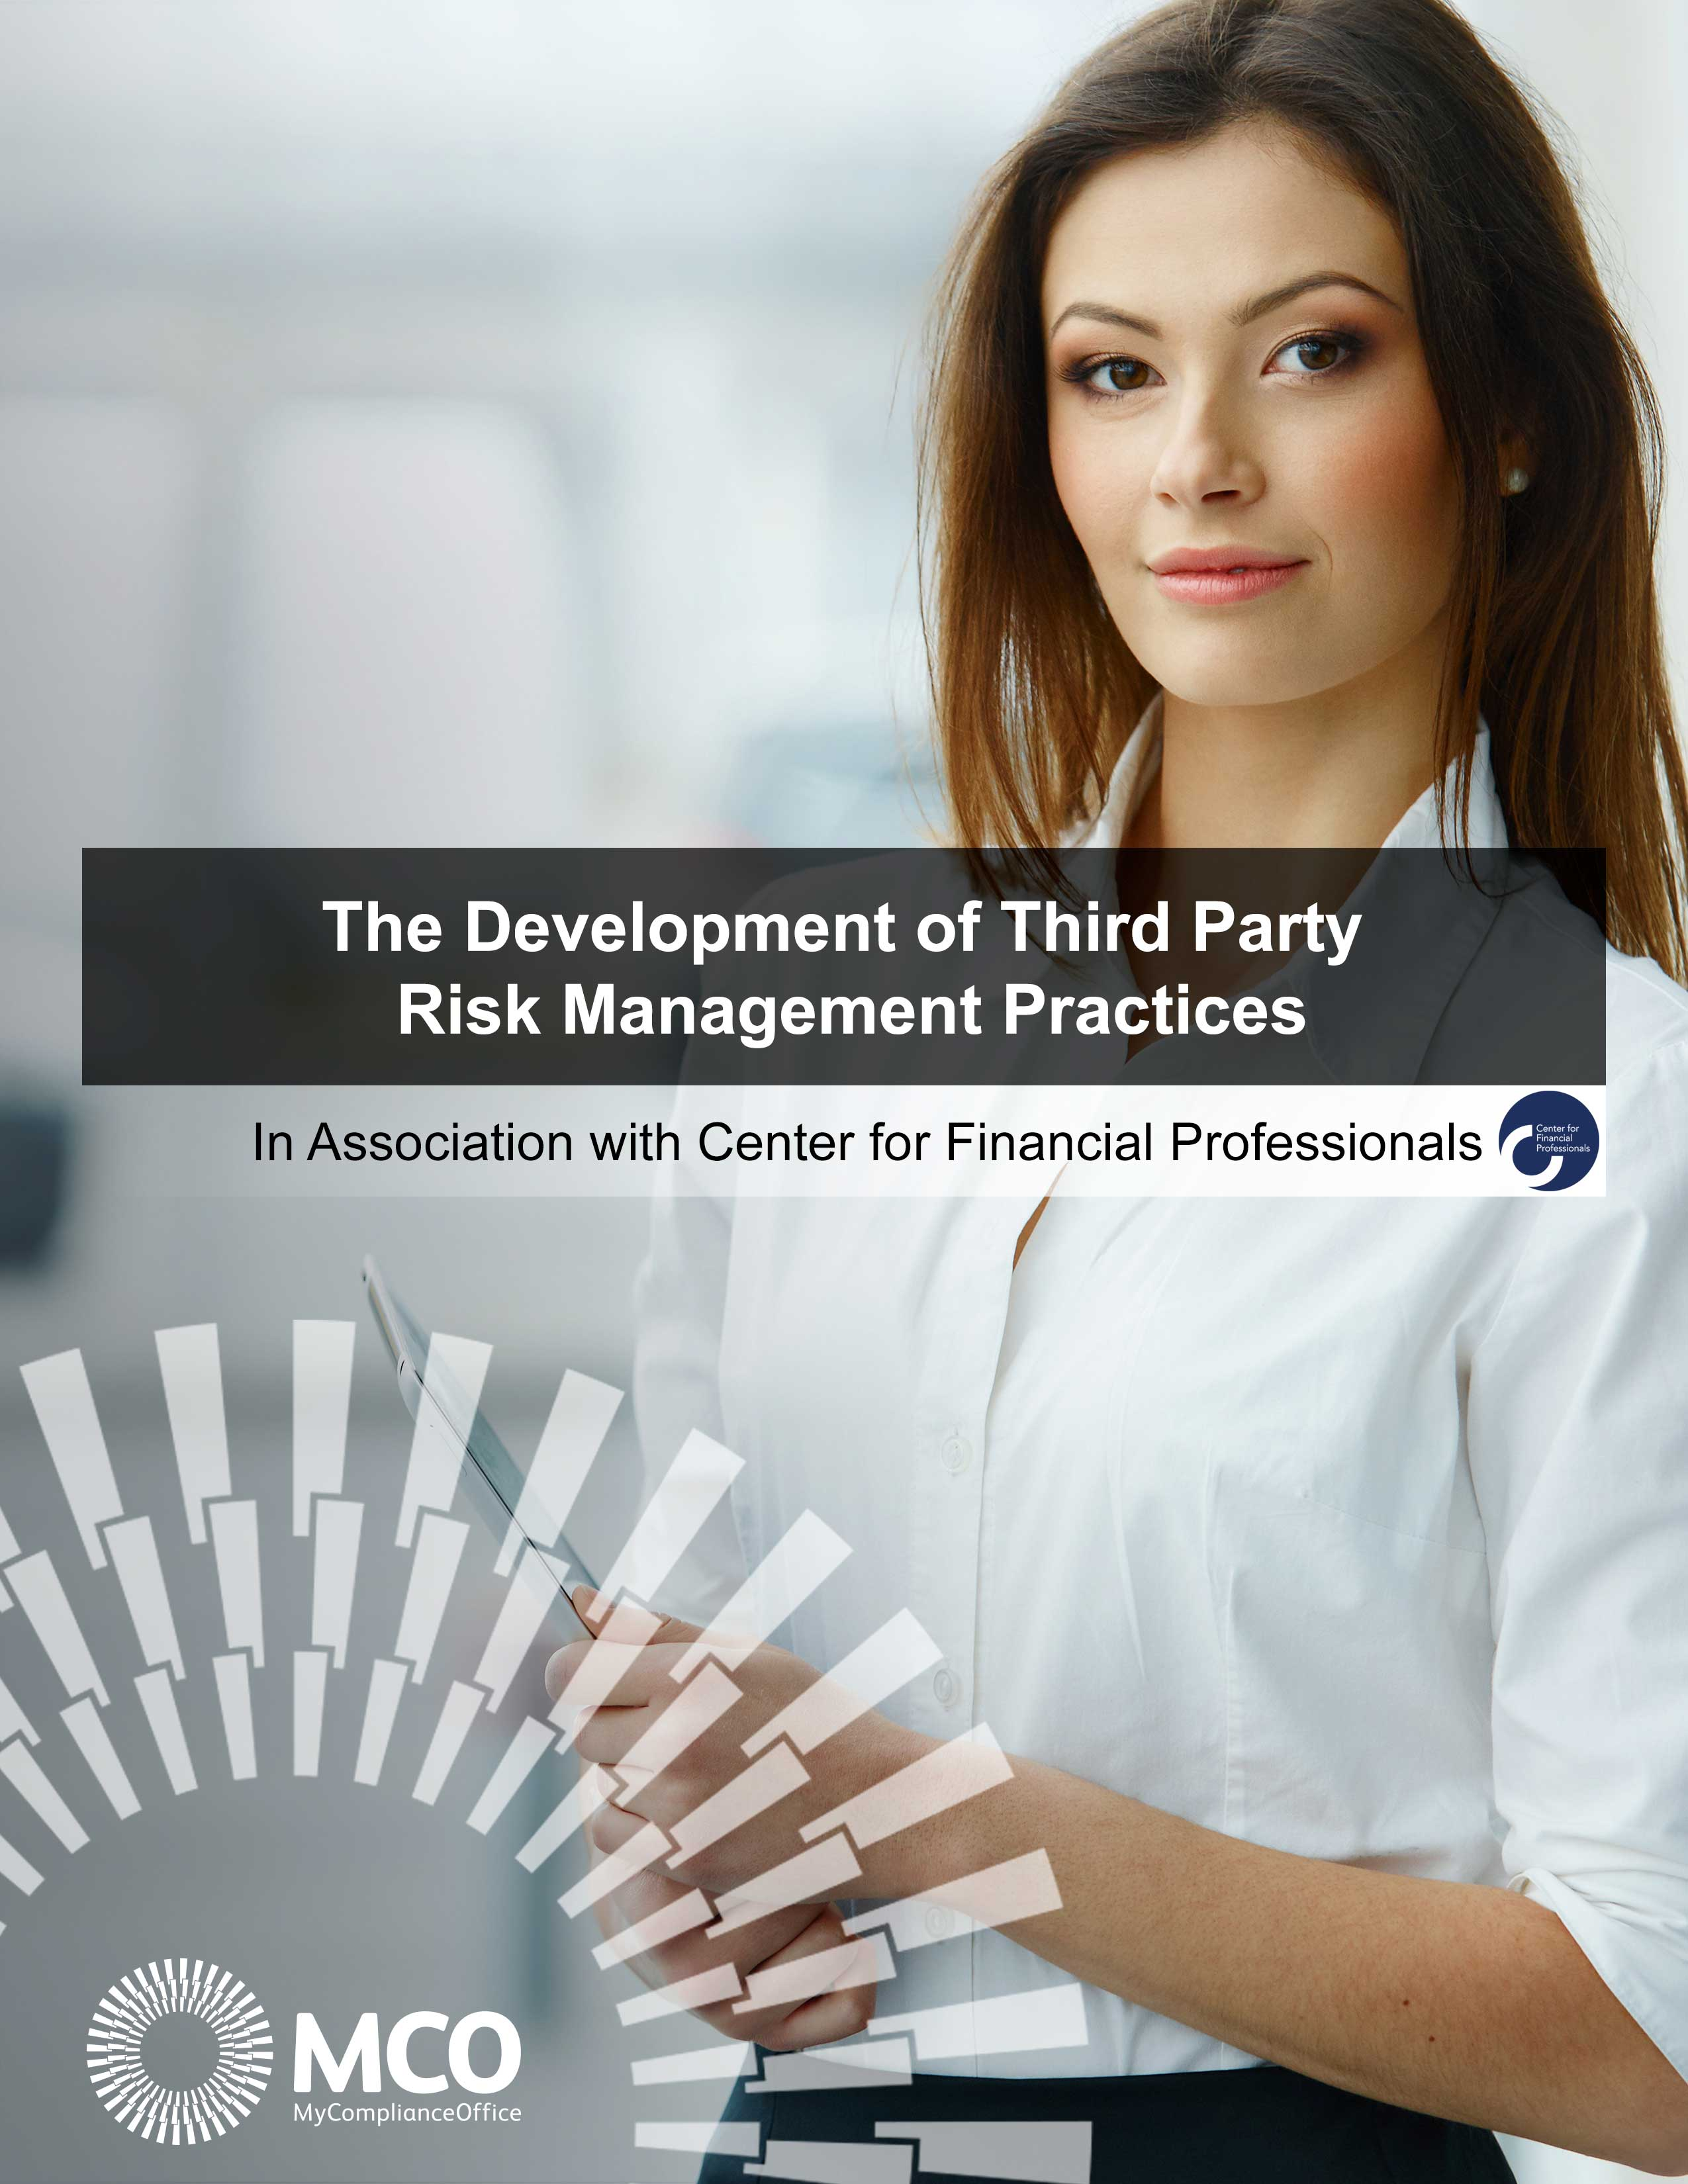 The-Development-of-Third-Party-Risk-Management-Practices.jpg